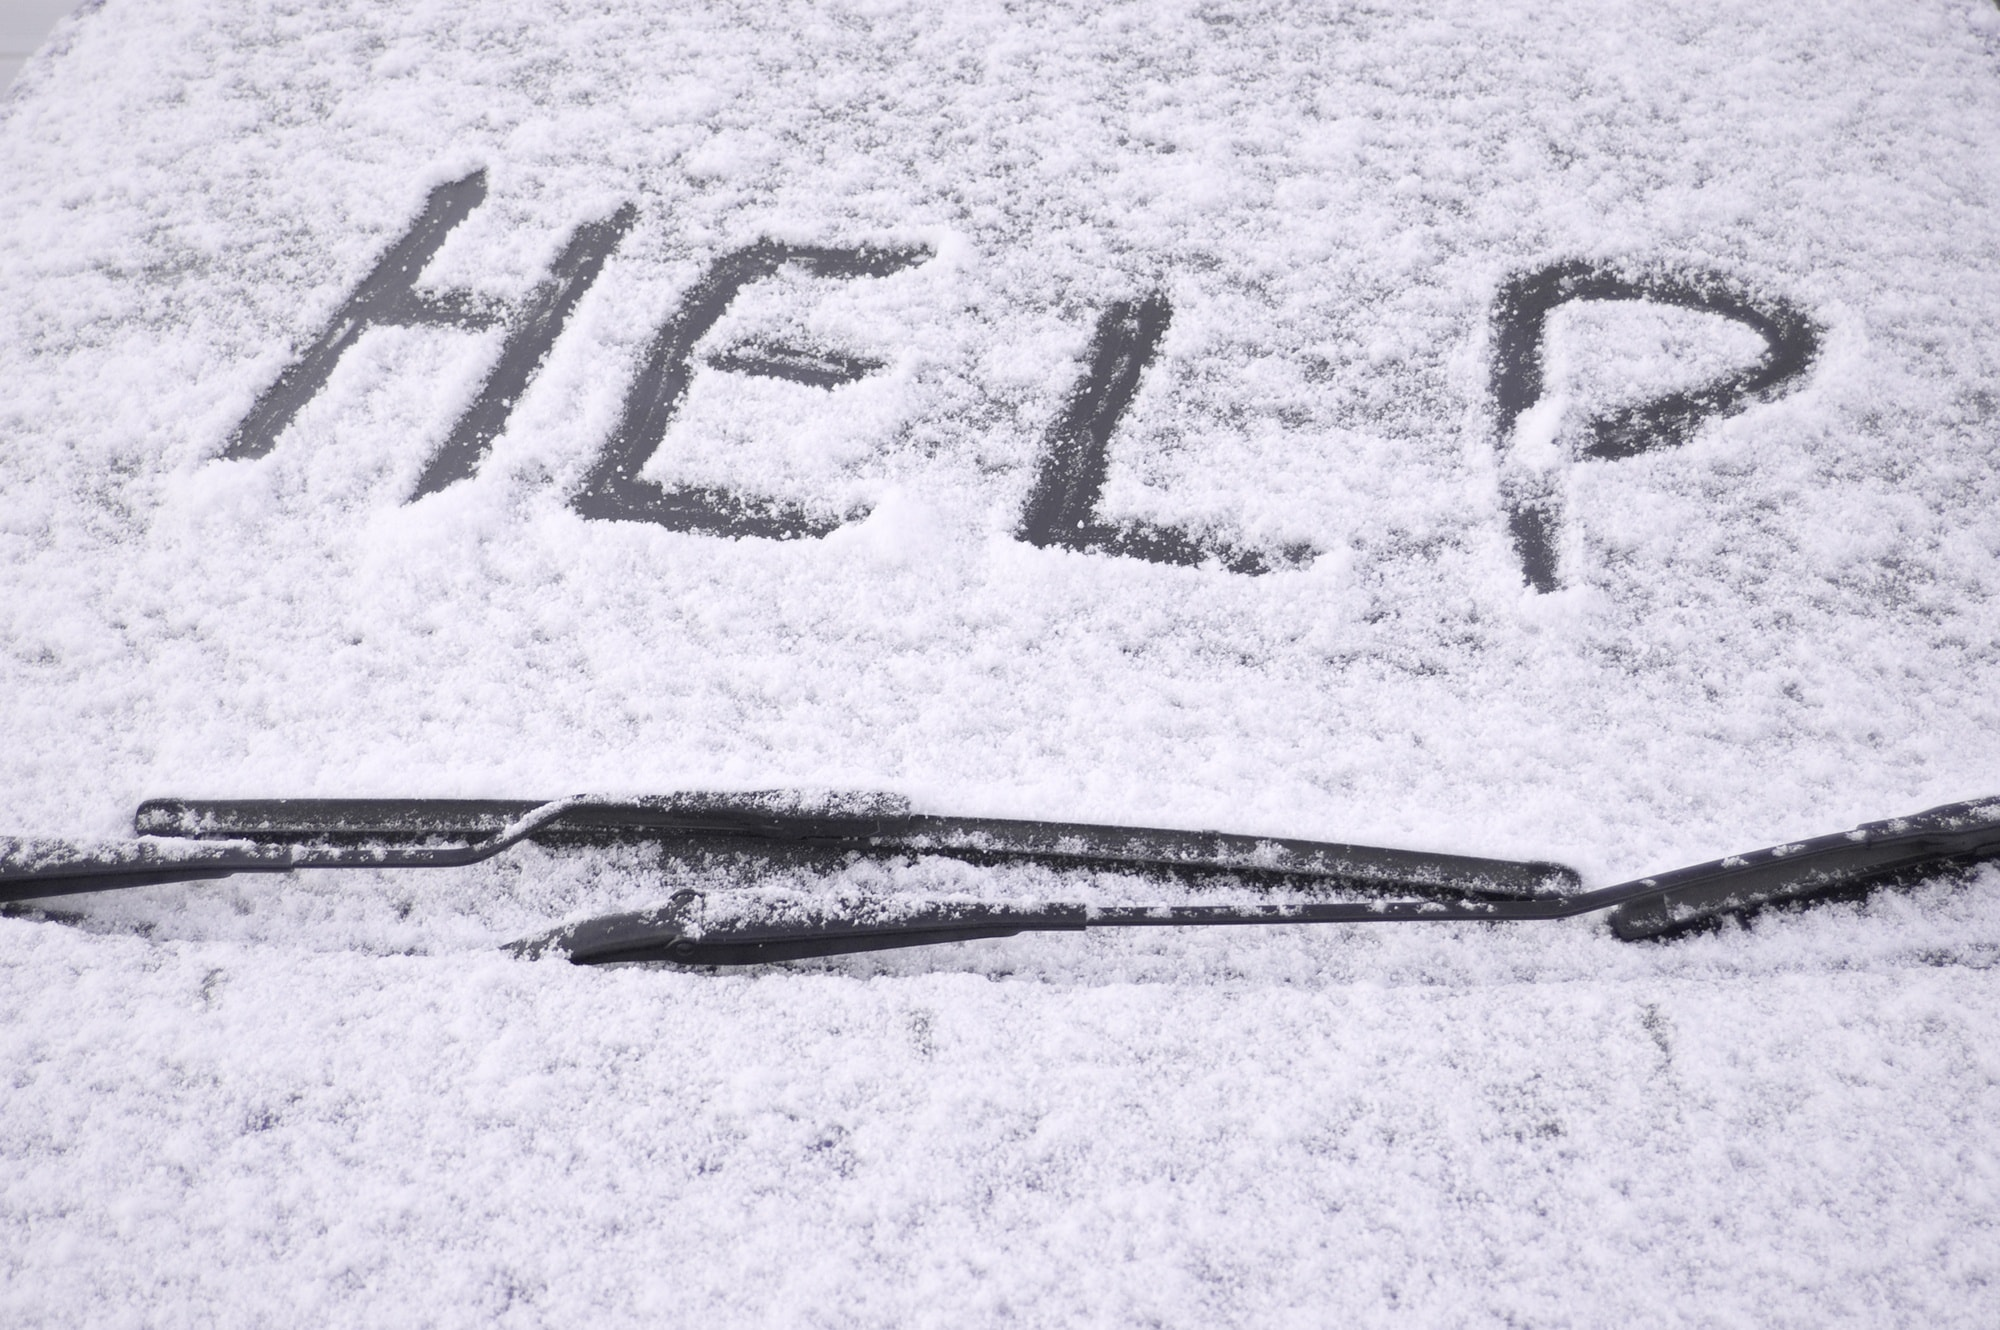 A help sign and brightly covered cloth used as a flag will let other drivers know you are in distress ~ 5 tips to prepare your vehicle for a winter road trip